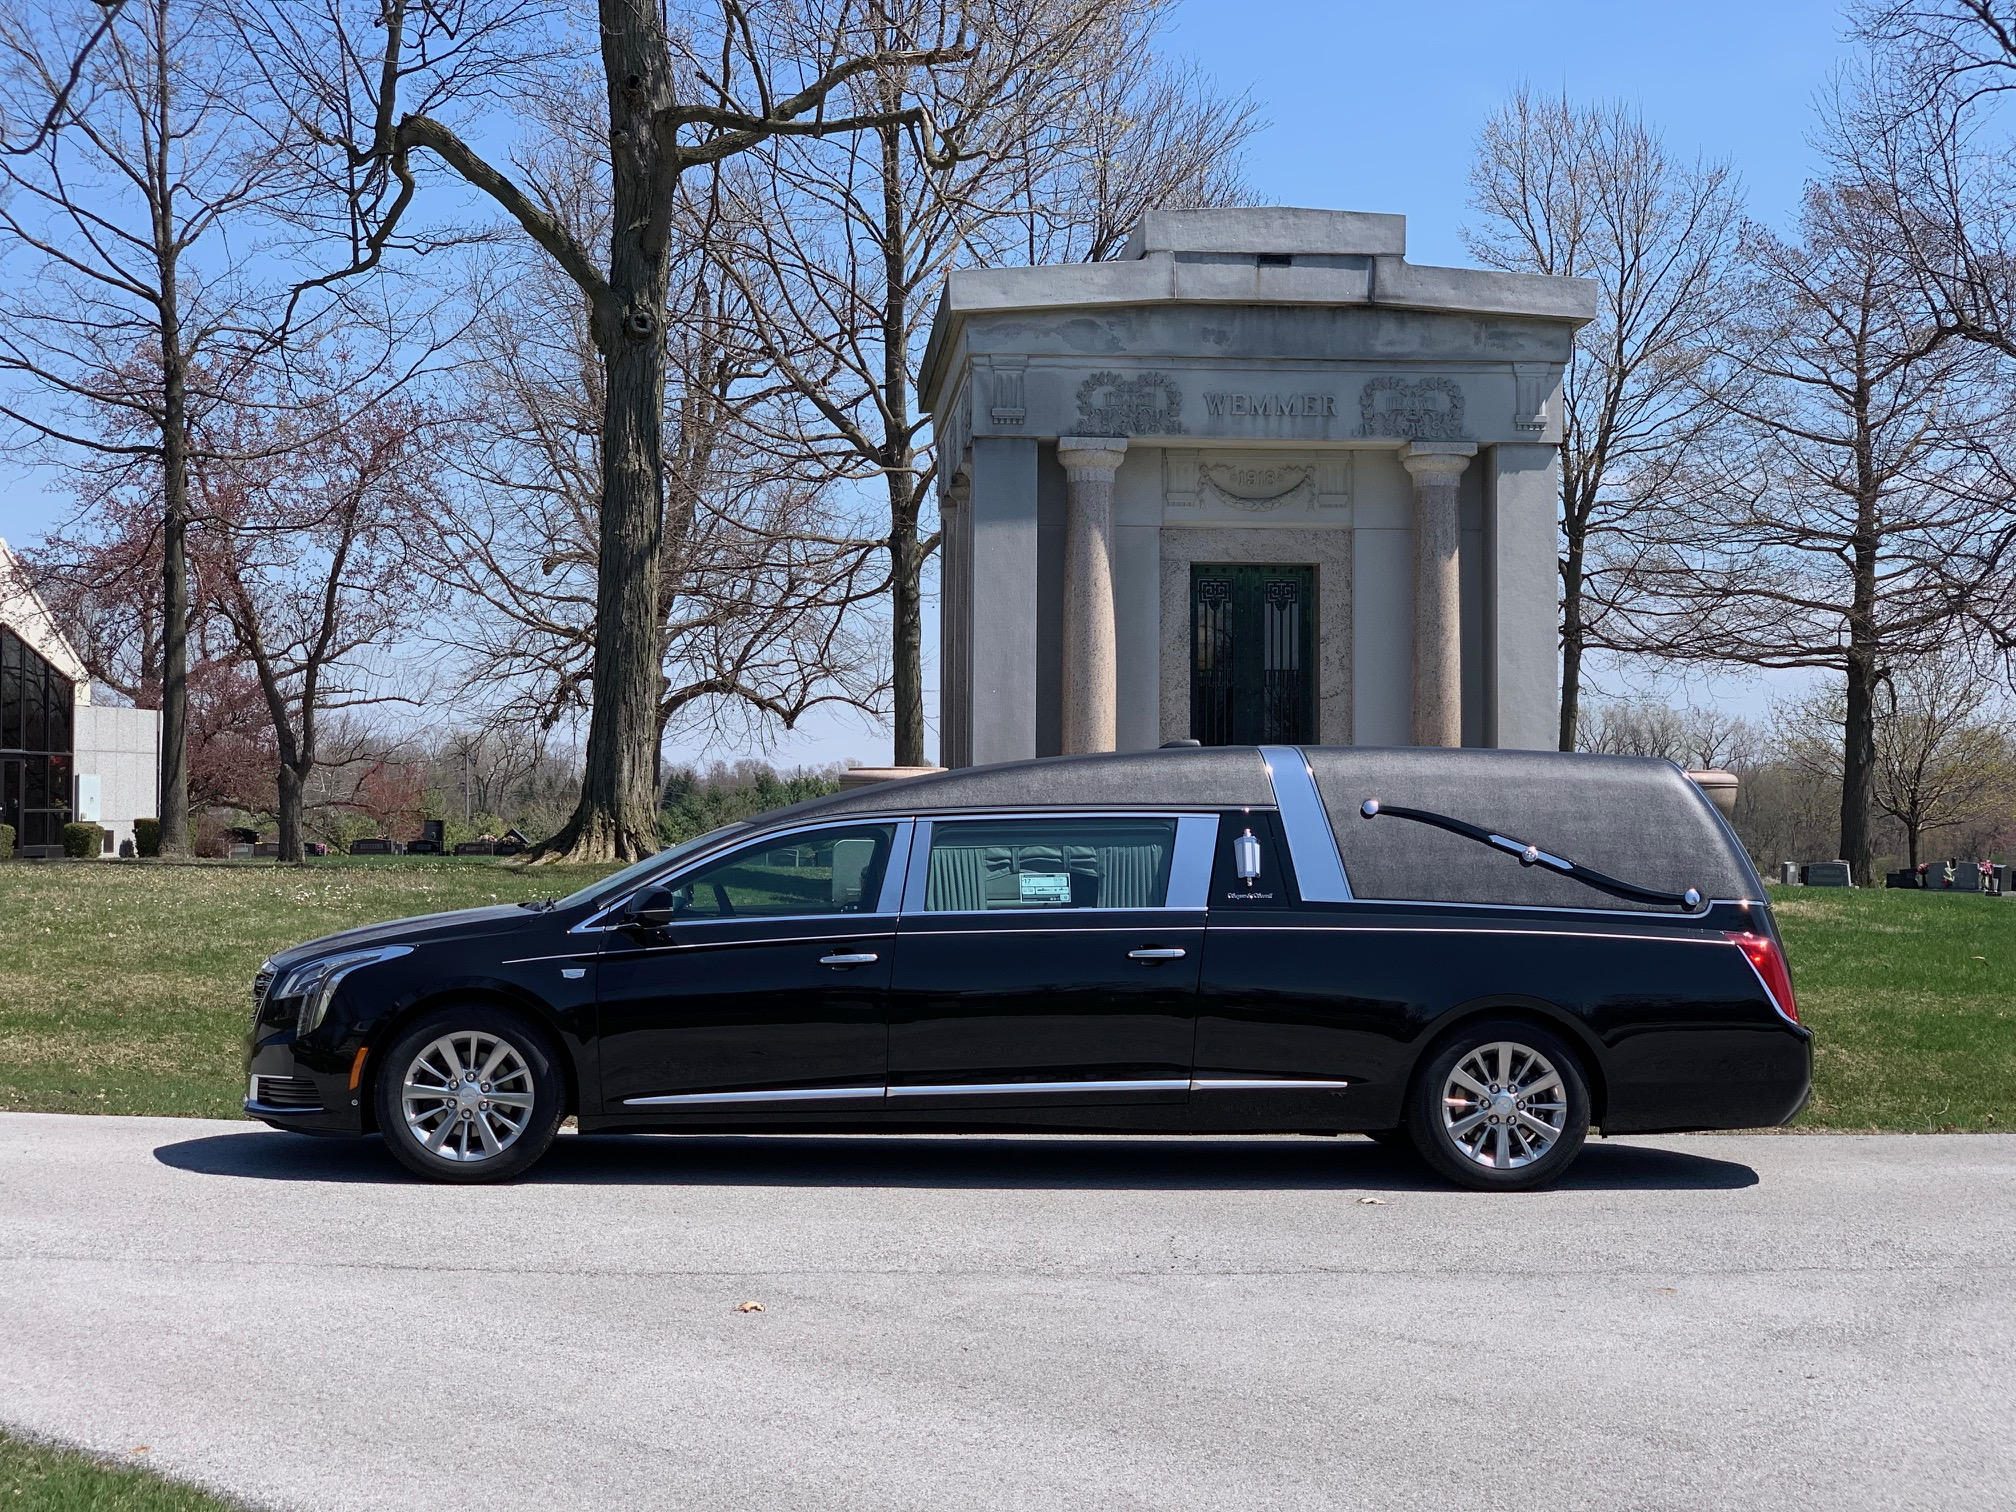 New 2019 Cadillac SS Hearse for Sale 2